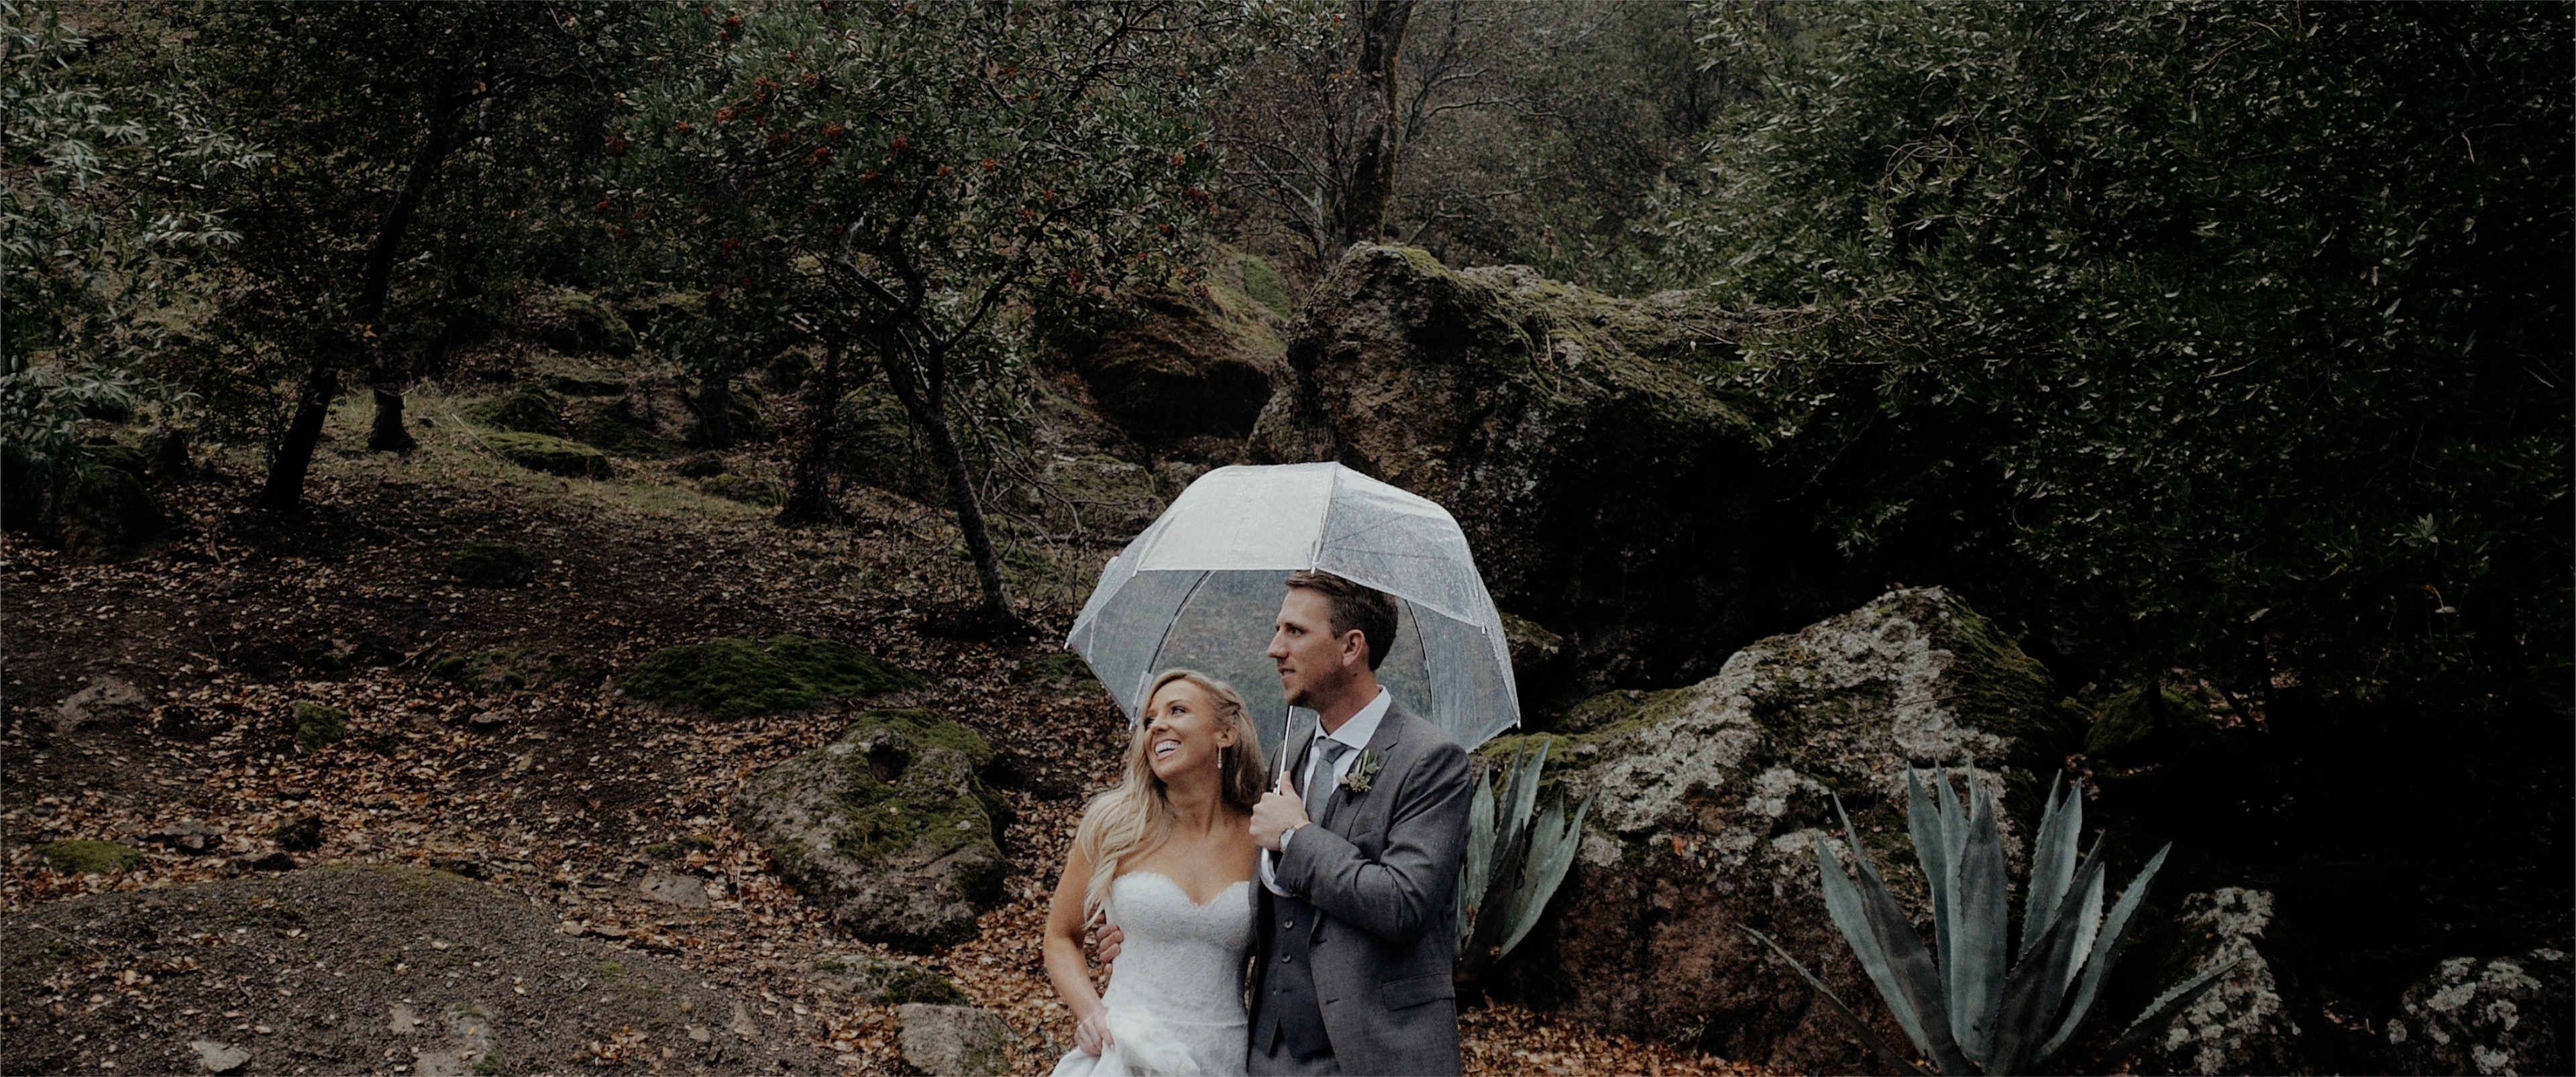 Carrie + Stephen | Calistoga, California | Calistoga Ranch